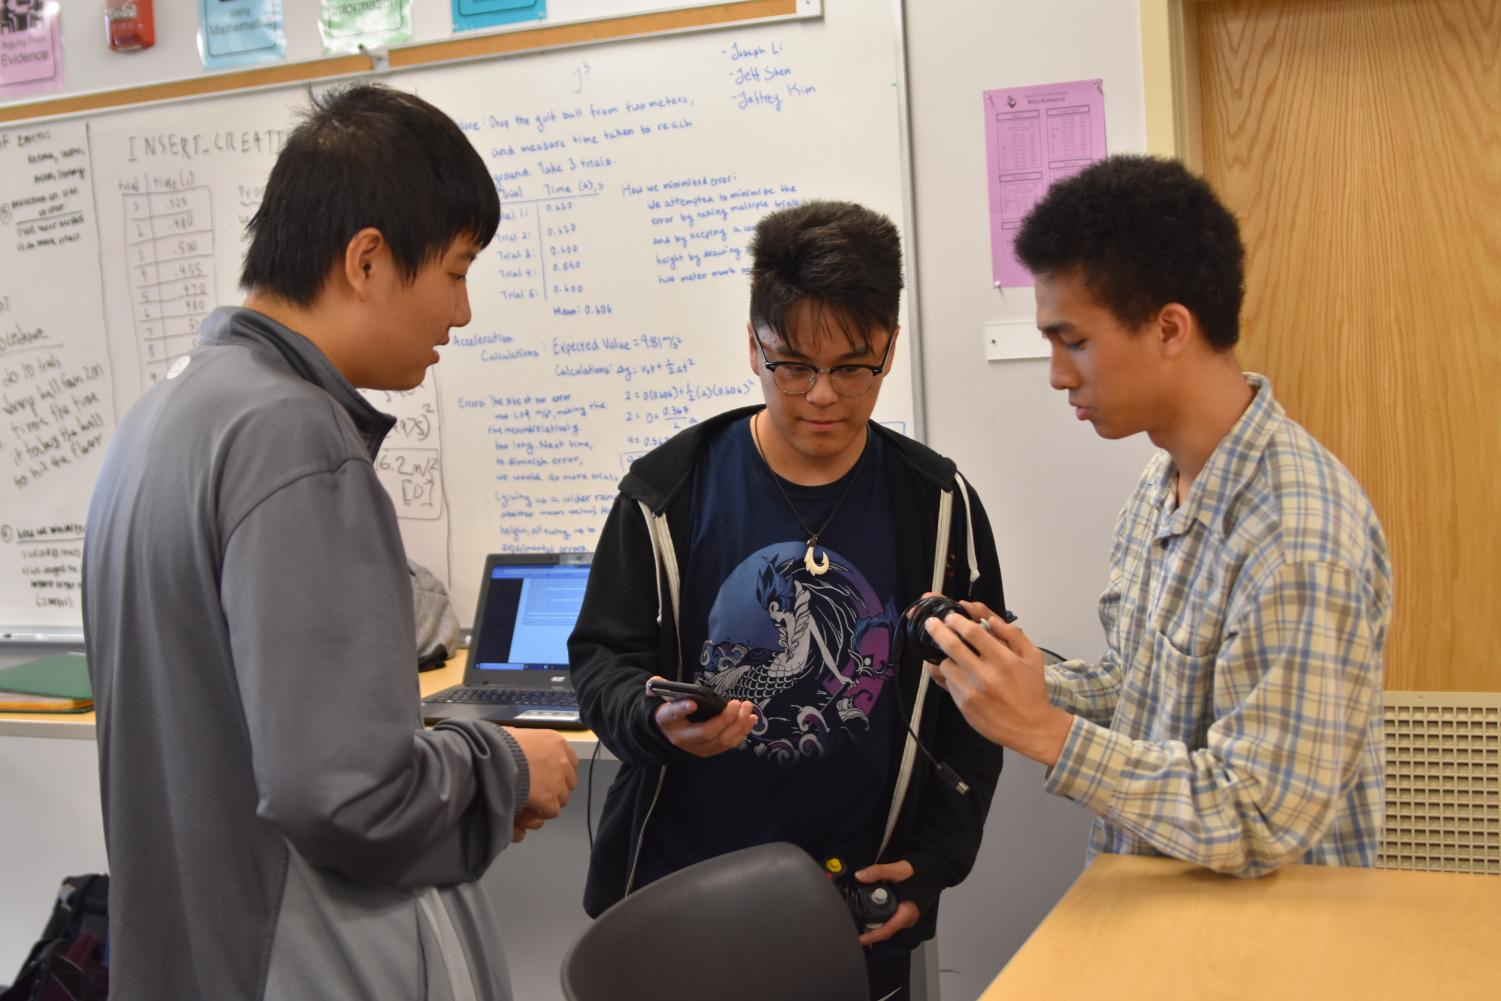 Seniors+Michael+Xiao%2C+Ethan+Yamada%2C+and+Spencer+Chang+%28left+to+right%29+discuss+the+setup+of+a+Smash+game.